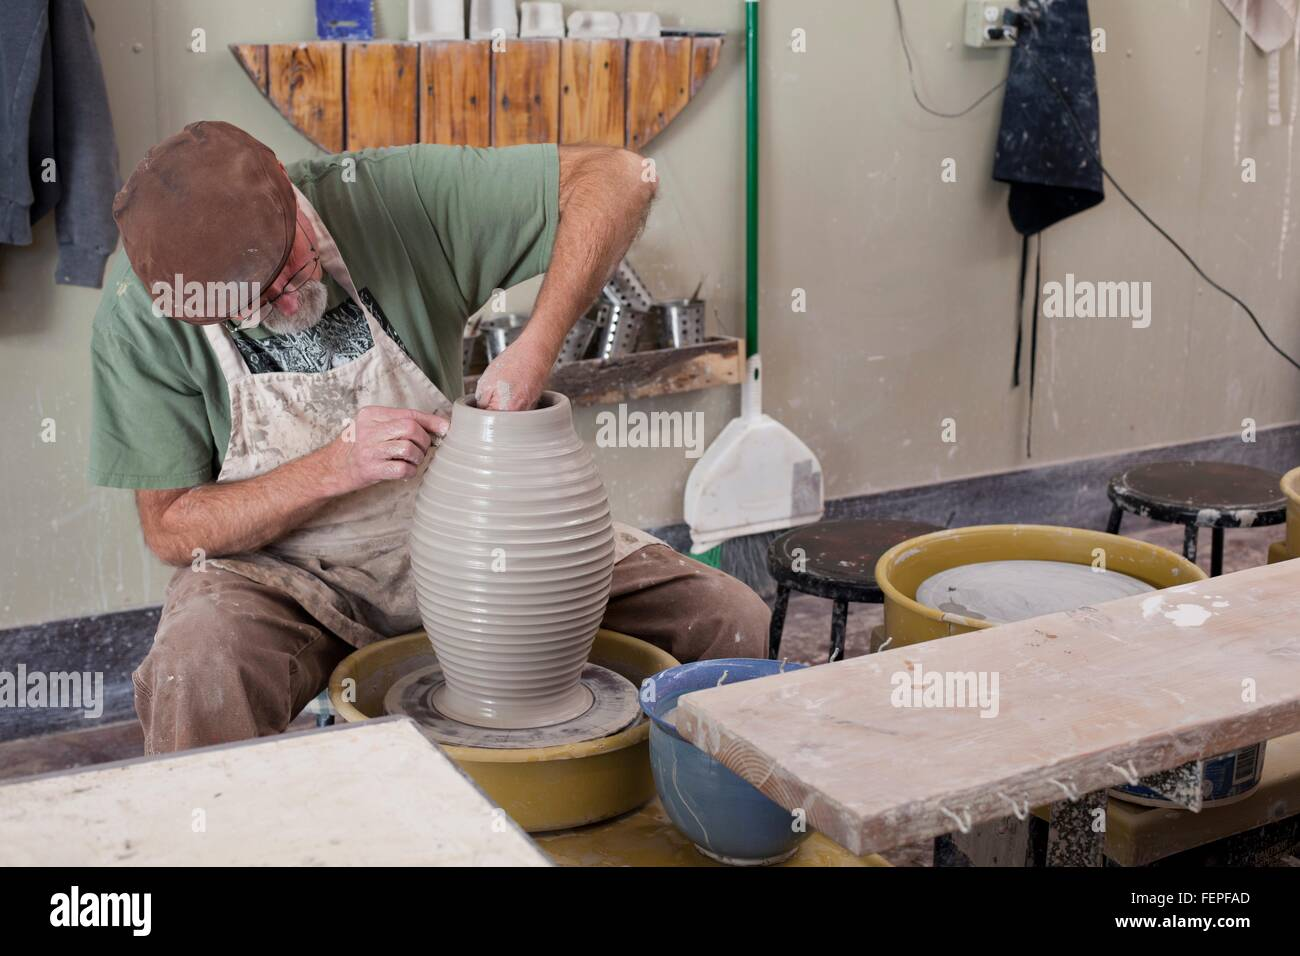 Potter wearing flat cap sitting at pottery wheel shaping clay vase - Stock Image